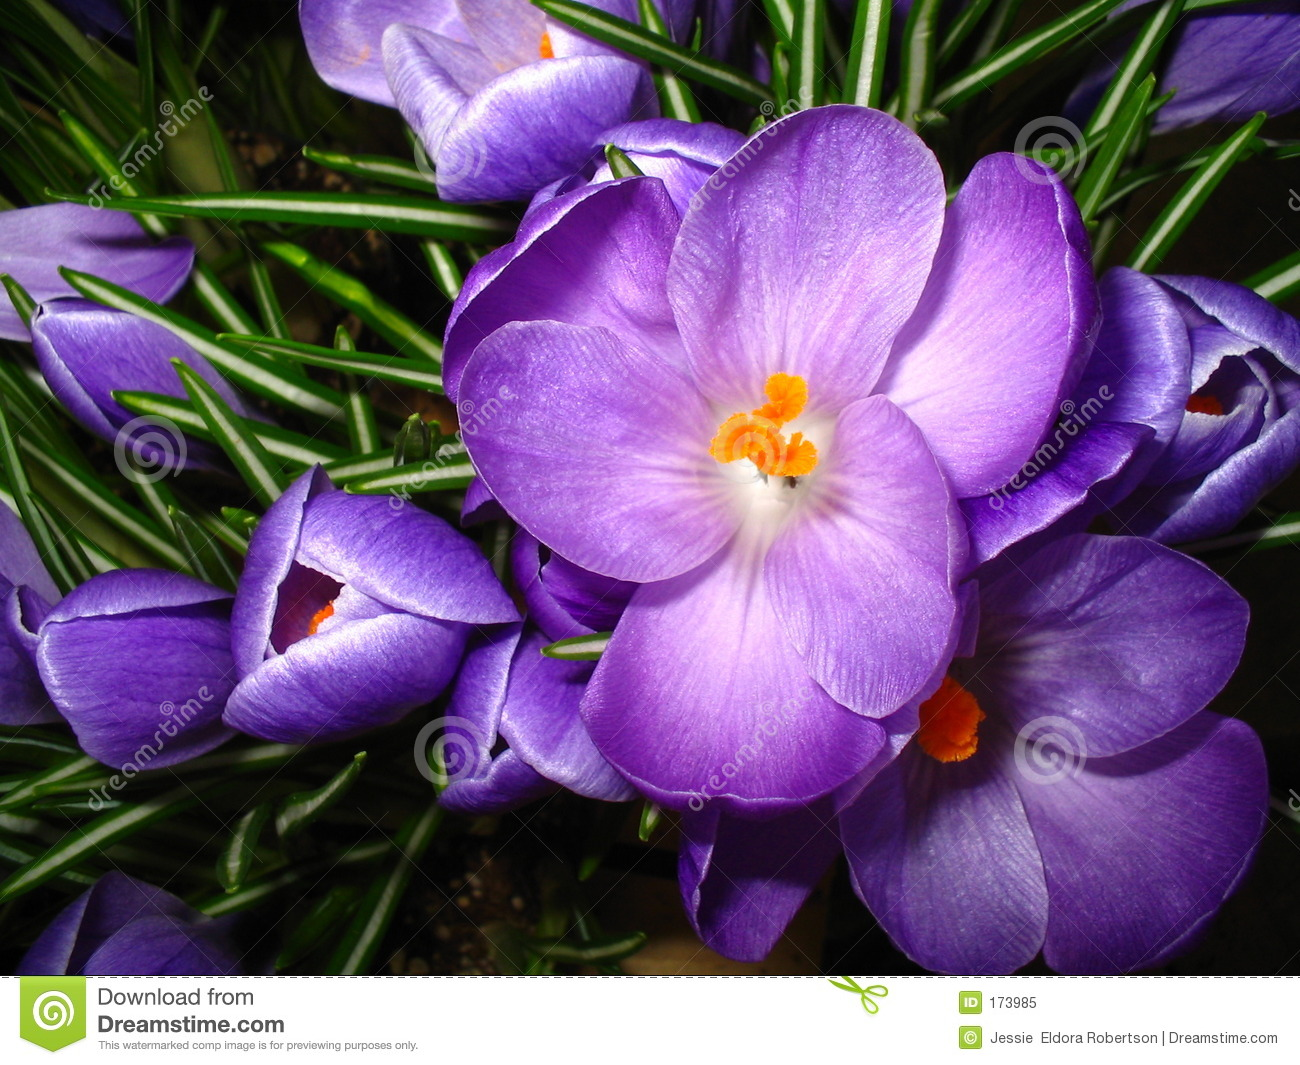 Close-up purple crocus flower